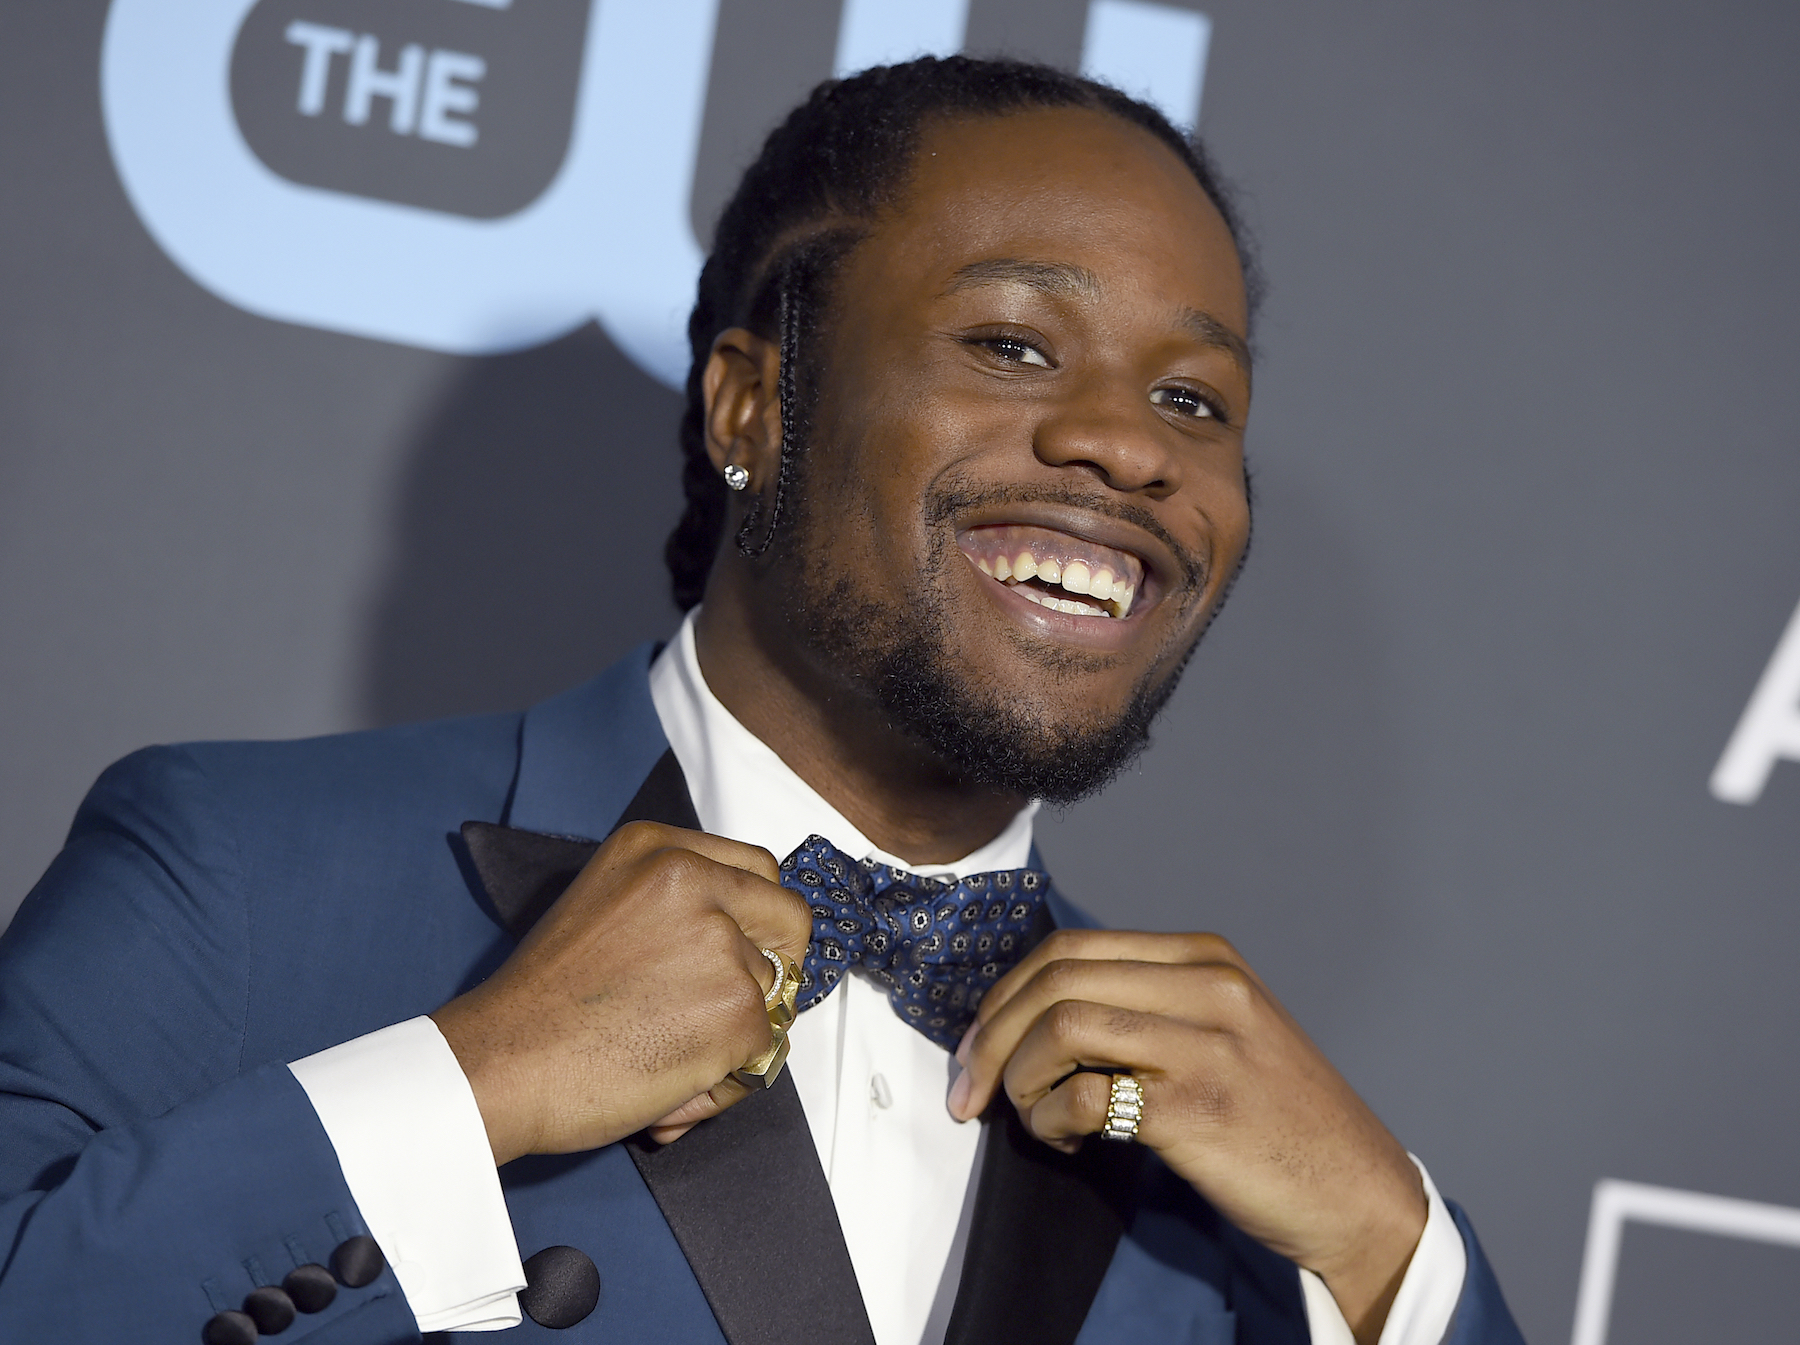 <div class='meta'><div class='origin-logo' data-origin='AP'></div><span class='caption-text' data-credit='Jordan Strauss/Invision/AP'>Shameik Moore arrives at the 24th annual Critics' Choice Awards on Sunday, Jan. 13, 2019, at the Barker Hangar in Santa Monica, Calif.</span></div>